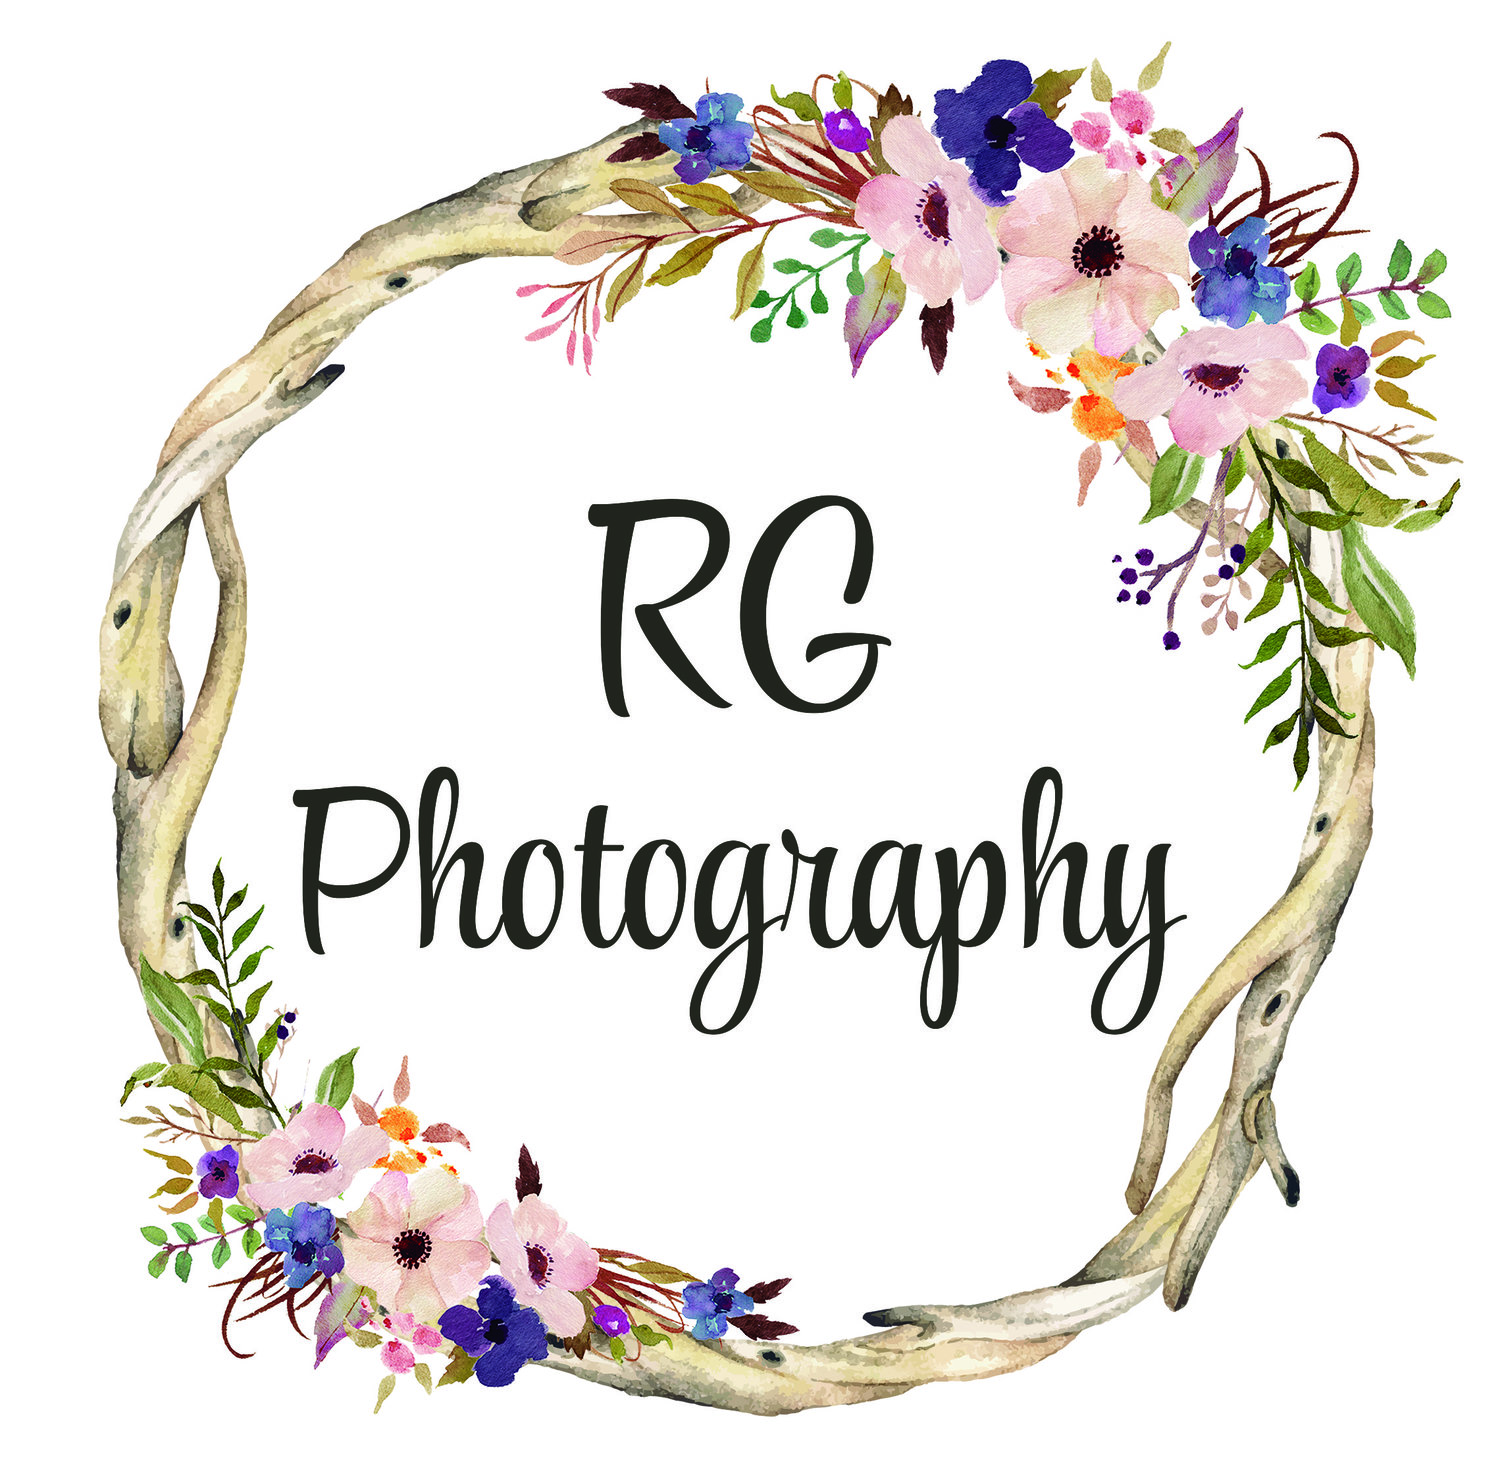 RG Photography